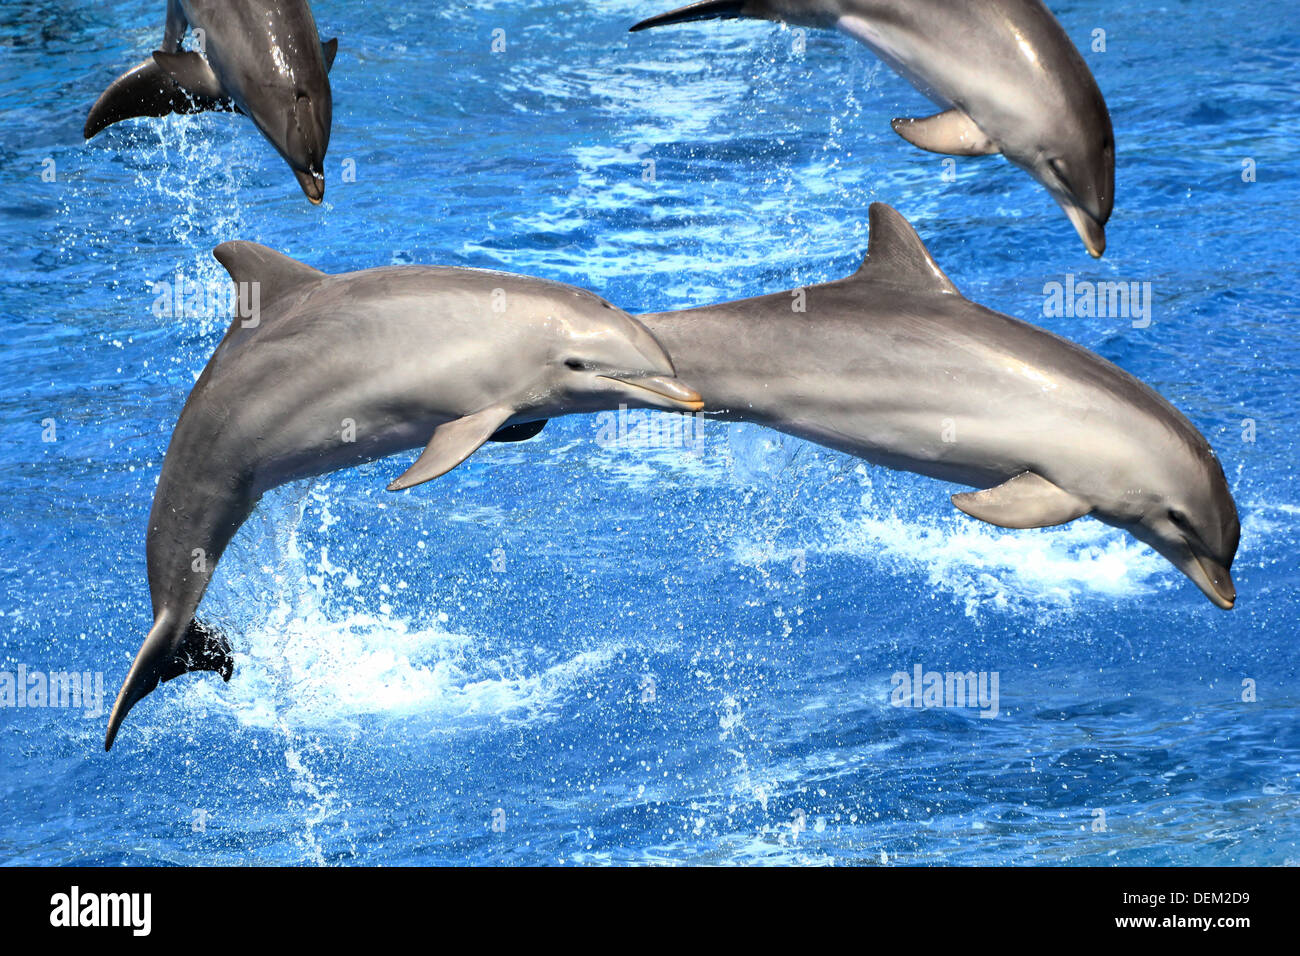 Bottlenose dolphin doing a somersault  at the Oceanografic Aquarium Marine Park & Zoo in Valencia, Spain Stock Photo